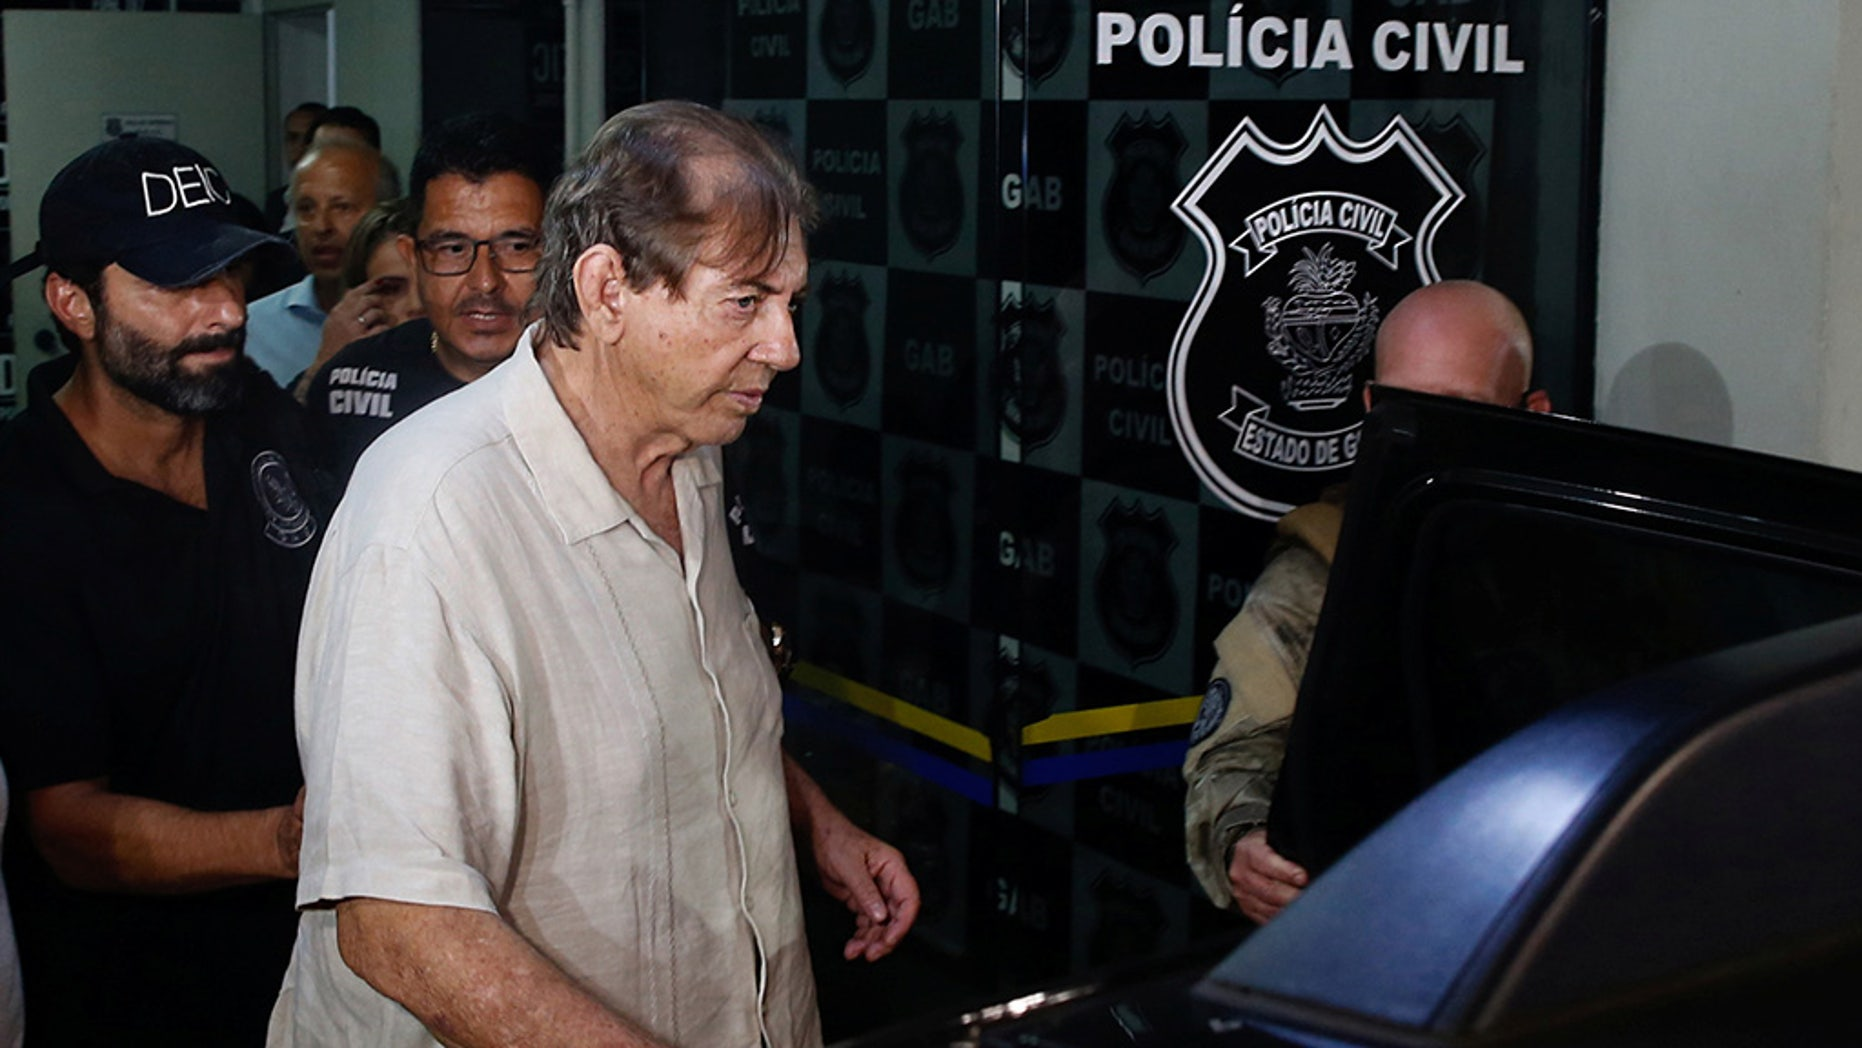 João Teixeira de Faria, who is known as João de Deus, or John of God, seen here in December, was charged with abusing four women while they were seeking spiritual guidance and treatment; a judge in Abadiânia, the small town in central Brazil where Faria's spiritual center is located, accepted the charges Wednesday. (REUTERS/Metropoles/Igo Estrela)